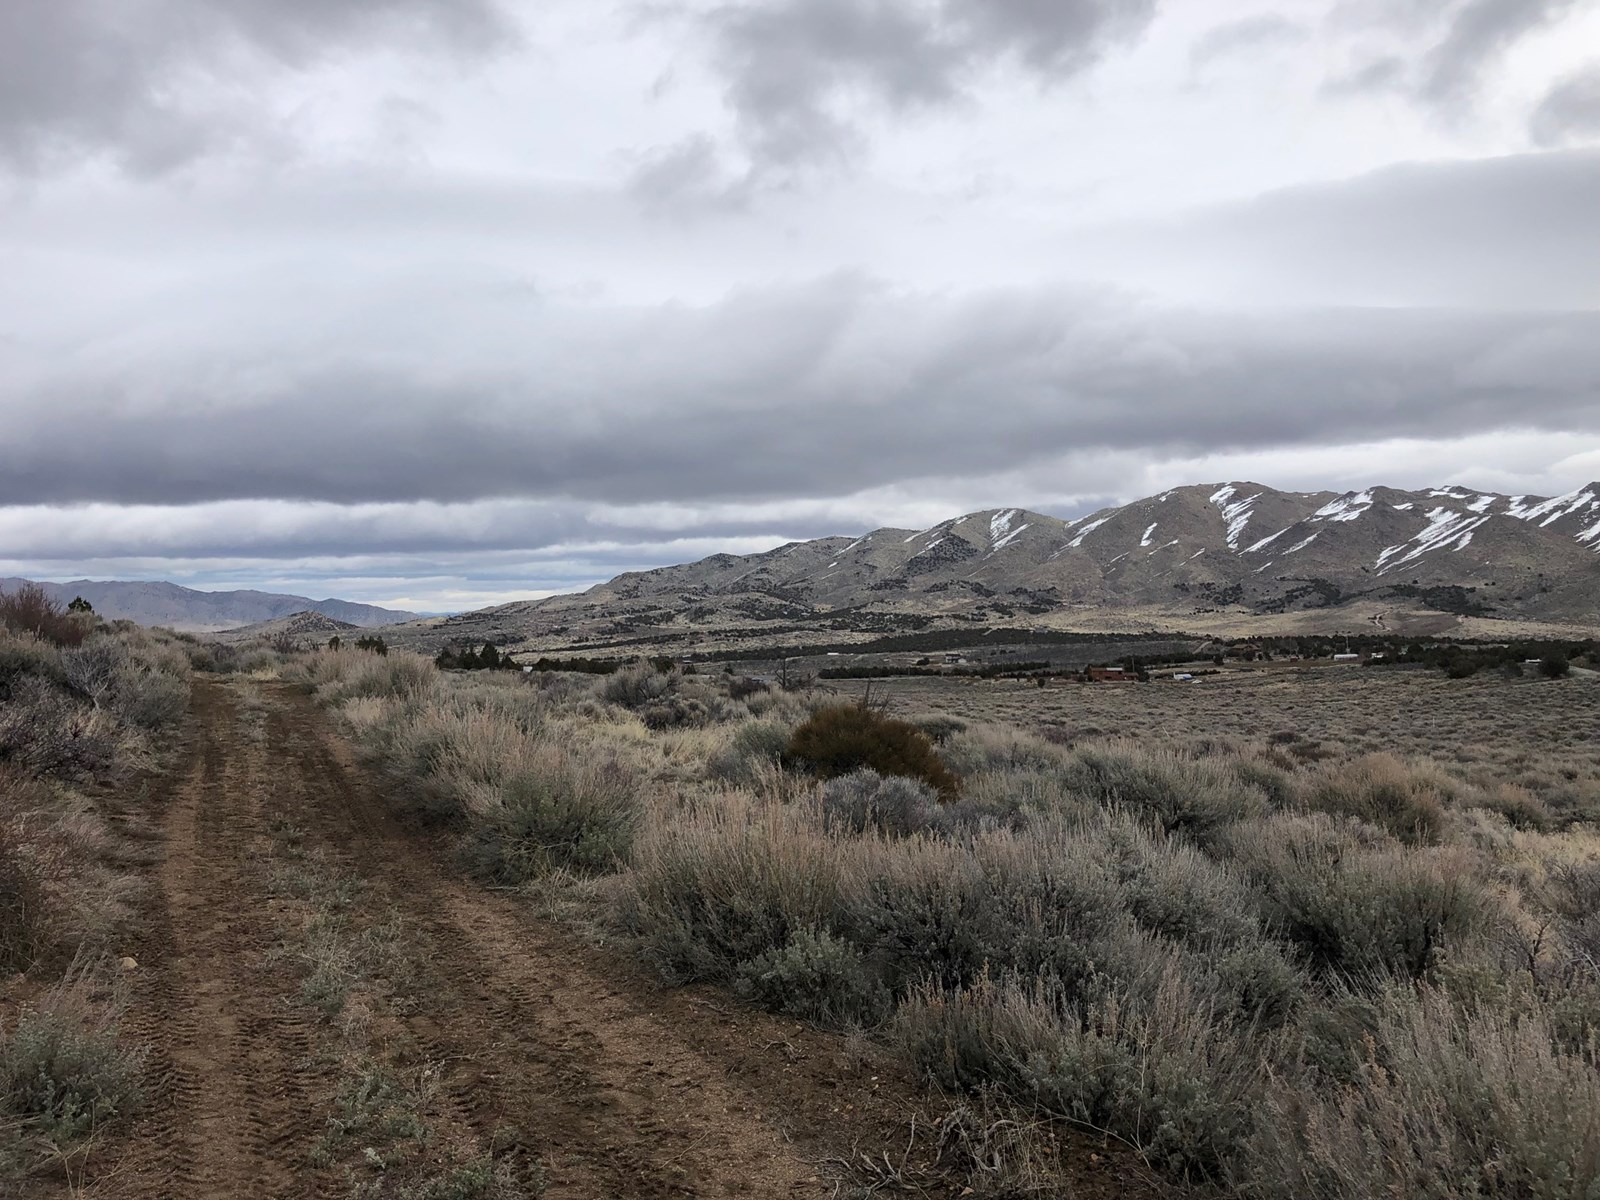 Building Lot for sale in Reno NV, Red Rock Area, 15+ acres